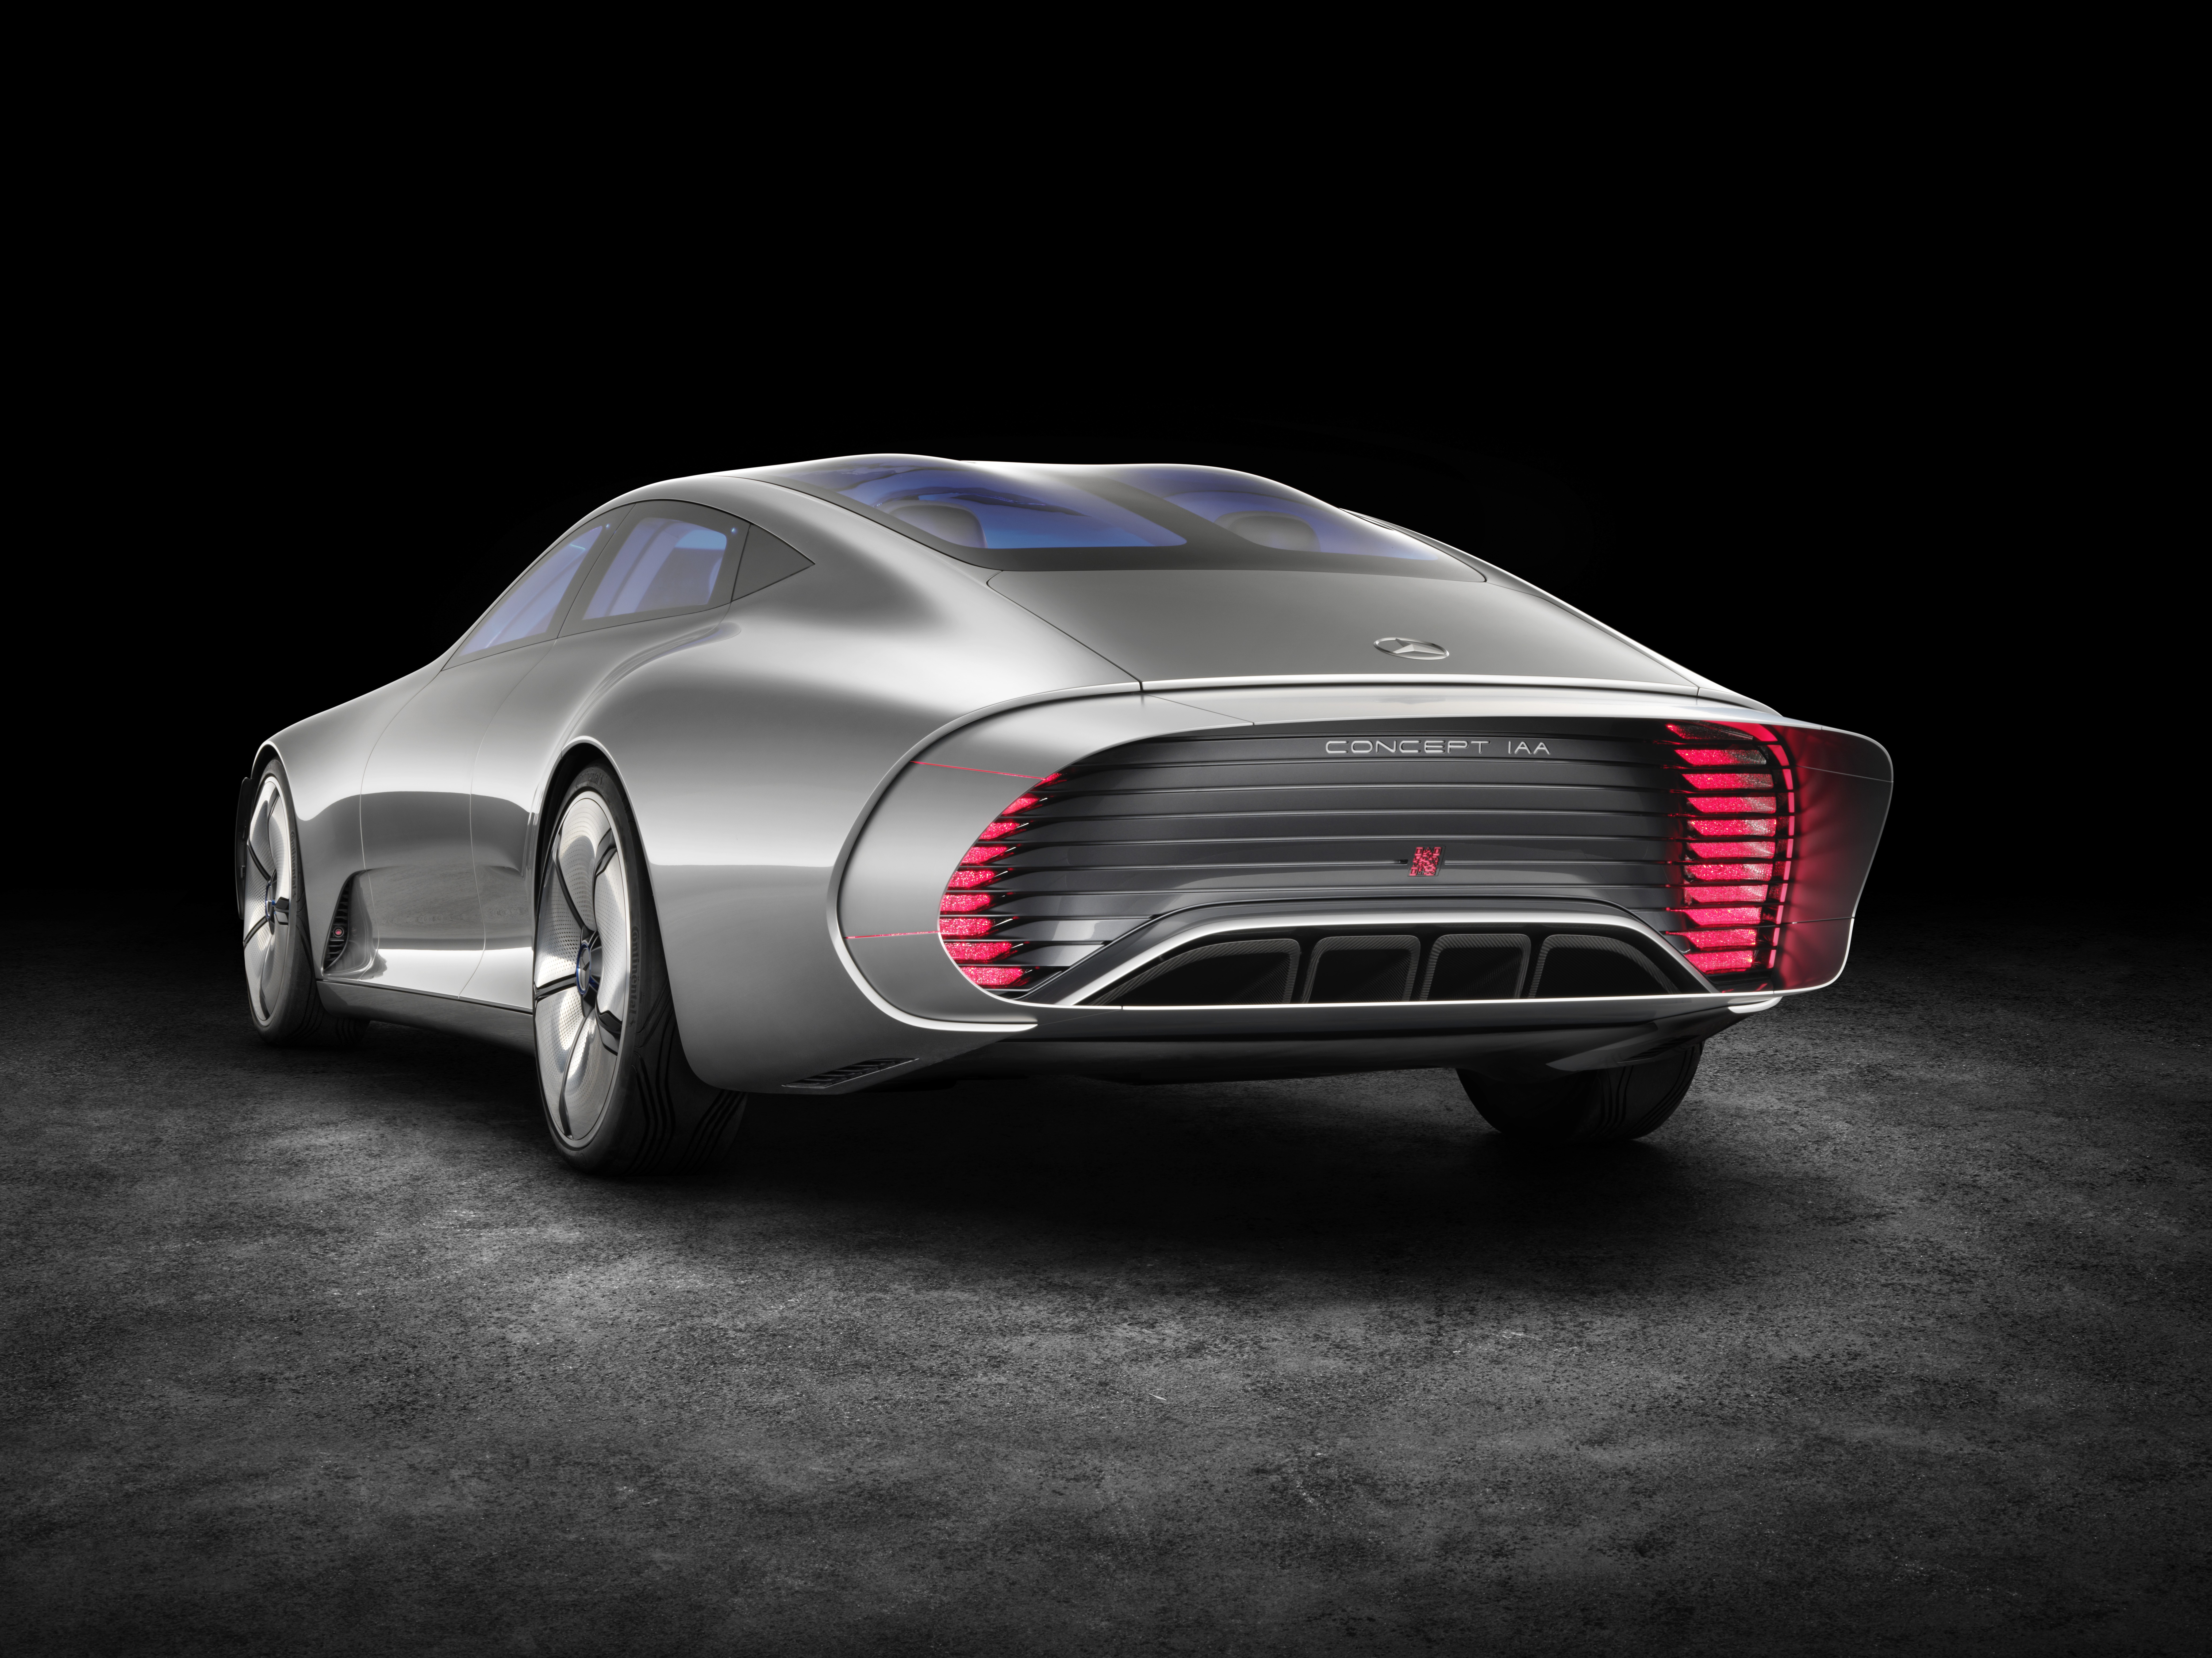 mercedes-benz-cle-could-become-world-s-most-aerodynamic-car_9.jpg